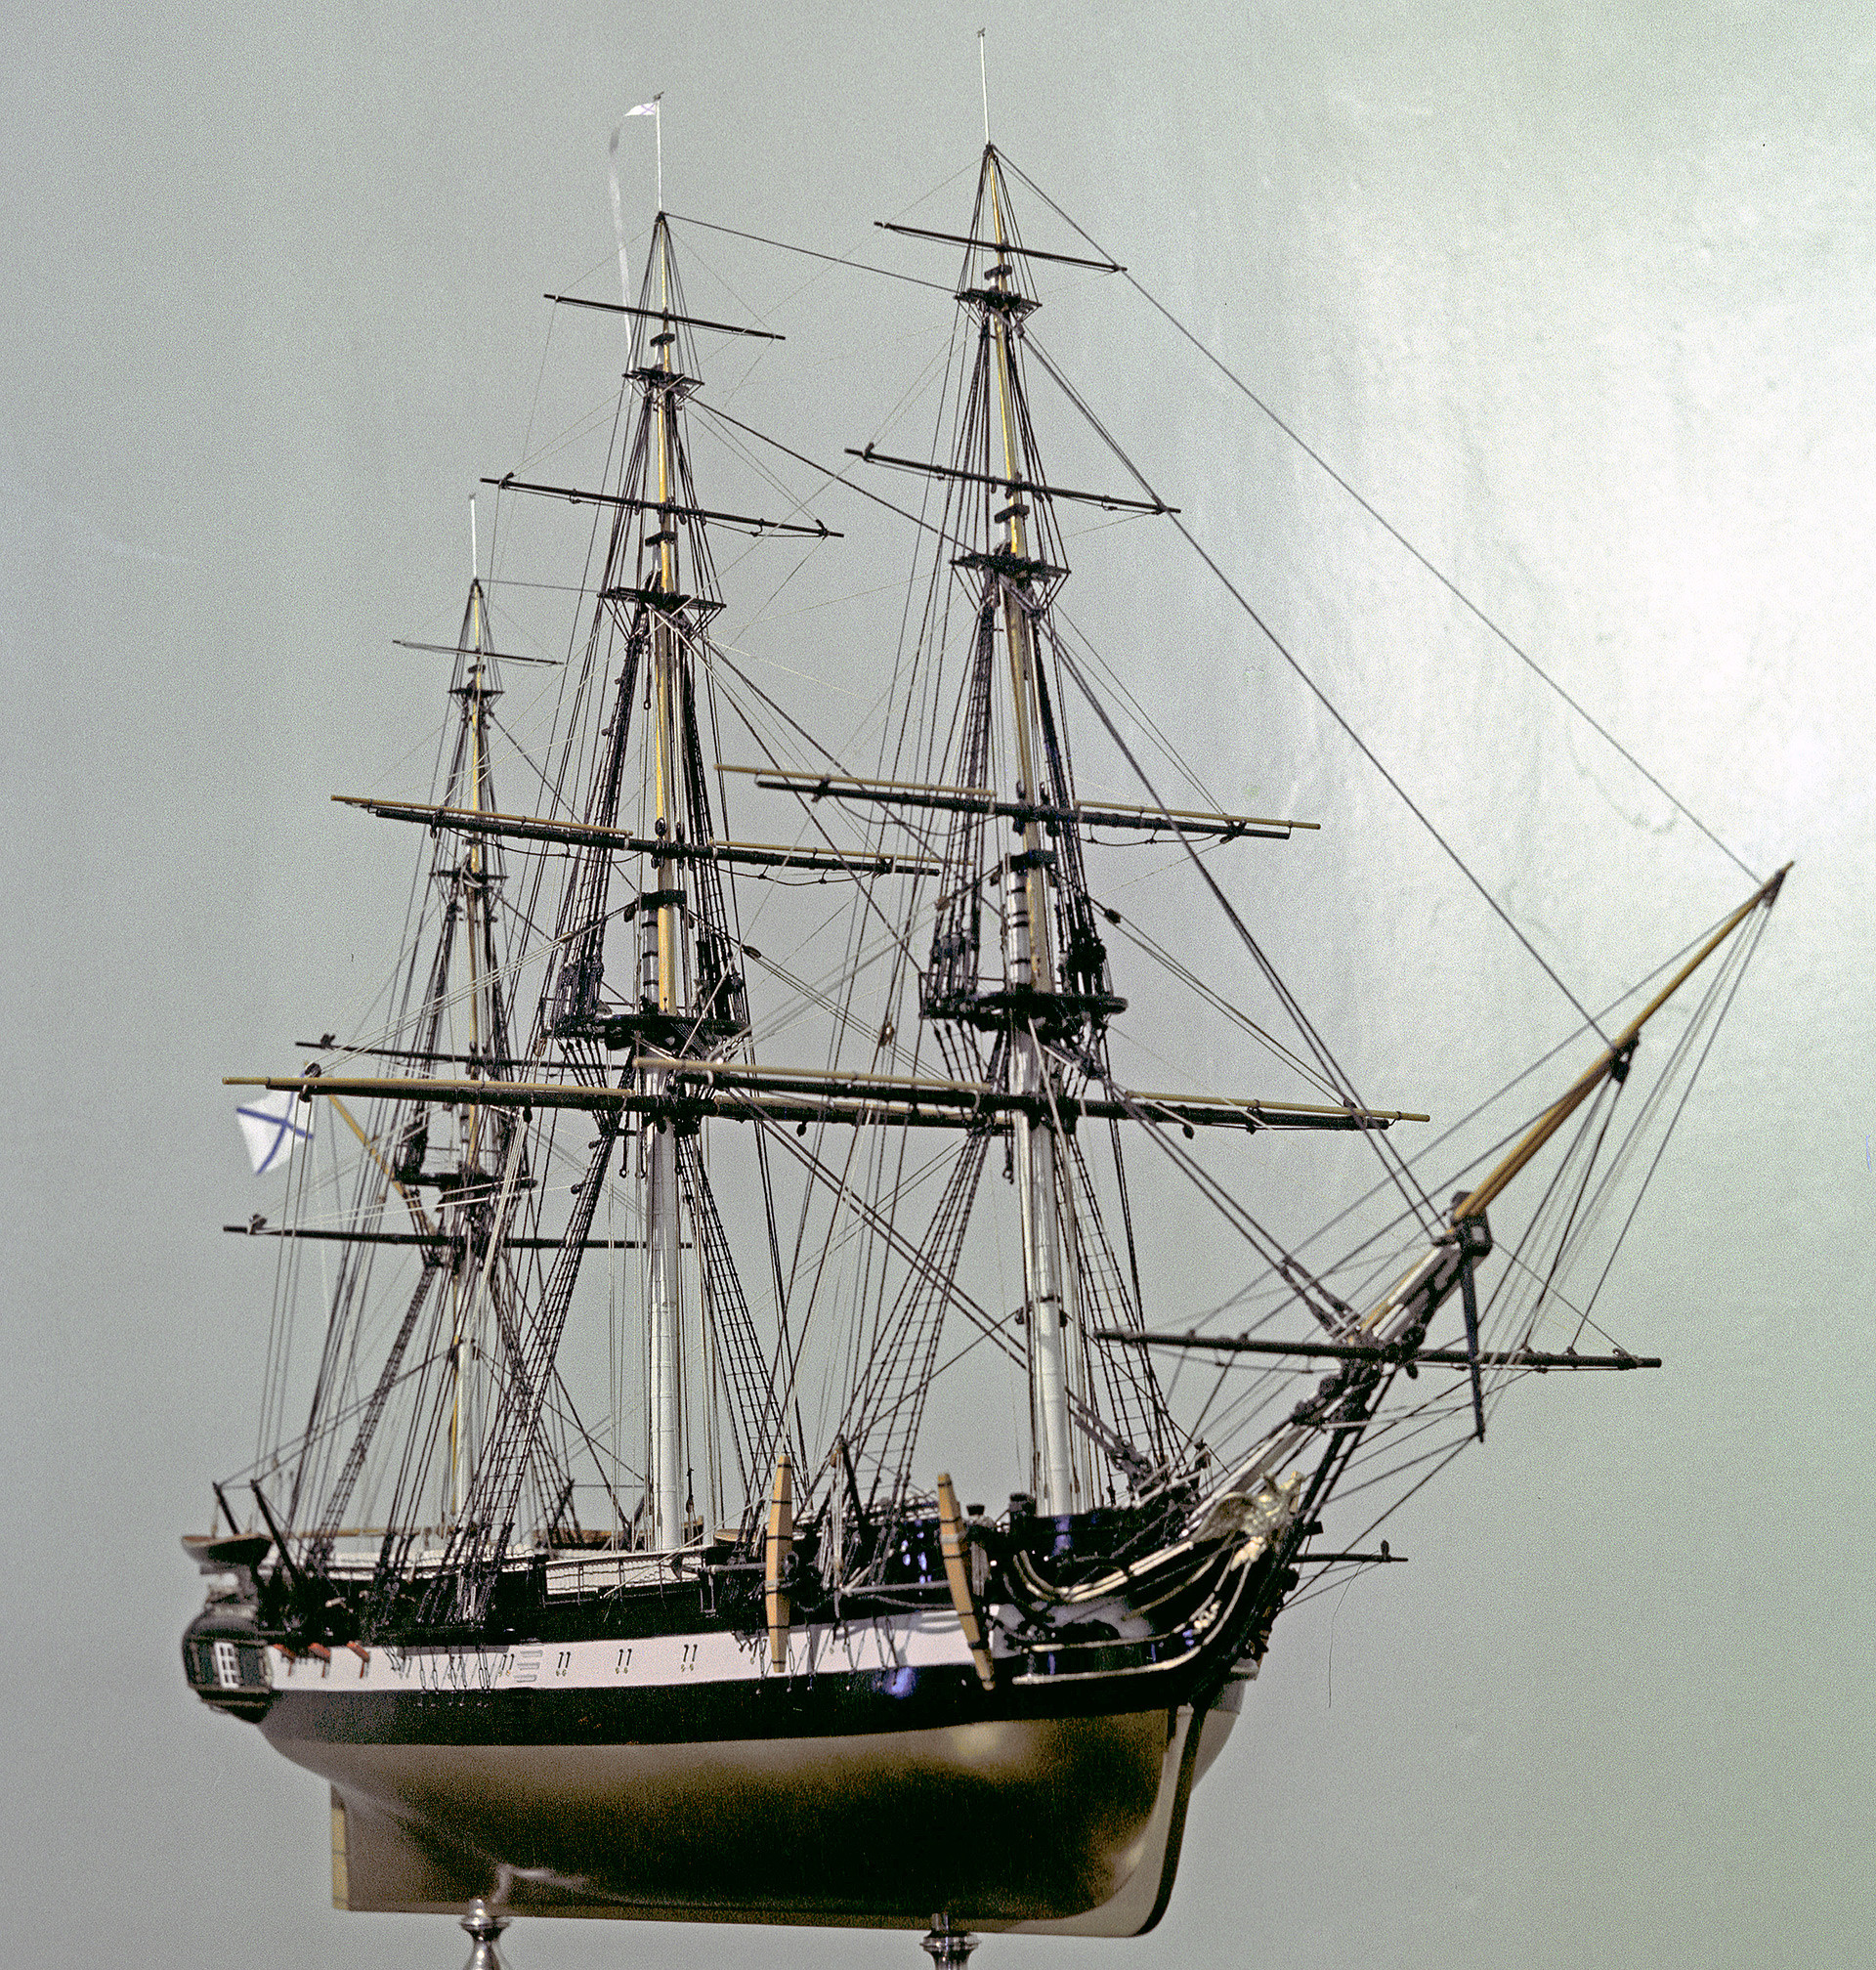 A model of a sloop-of-war Vostok in the Central Navy Museum in Leningrad in 1970.